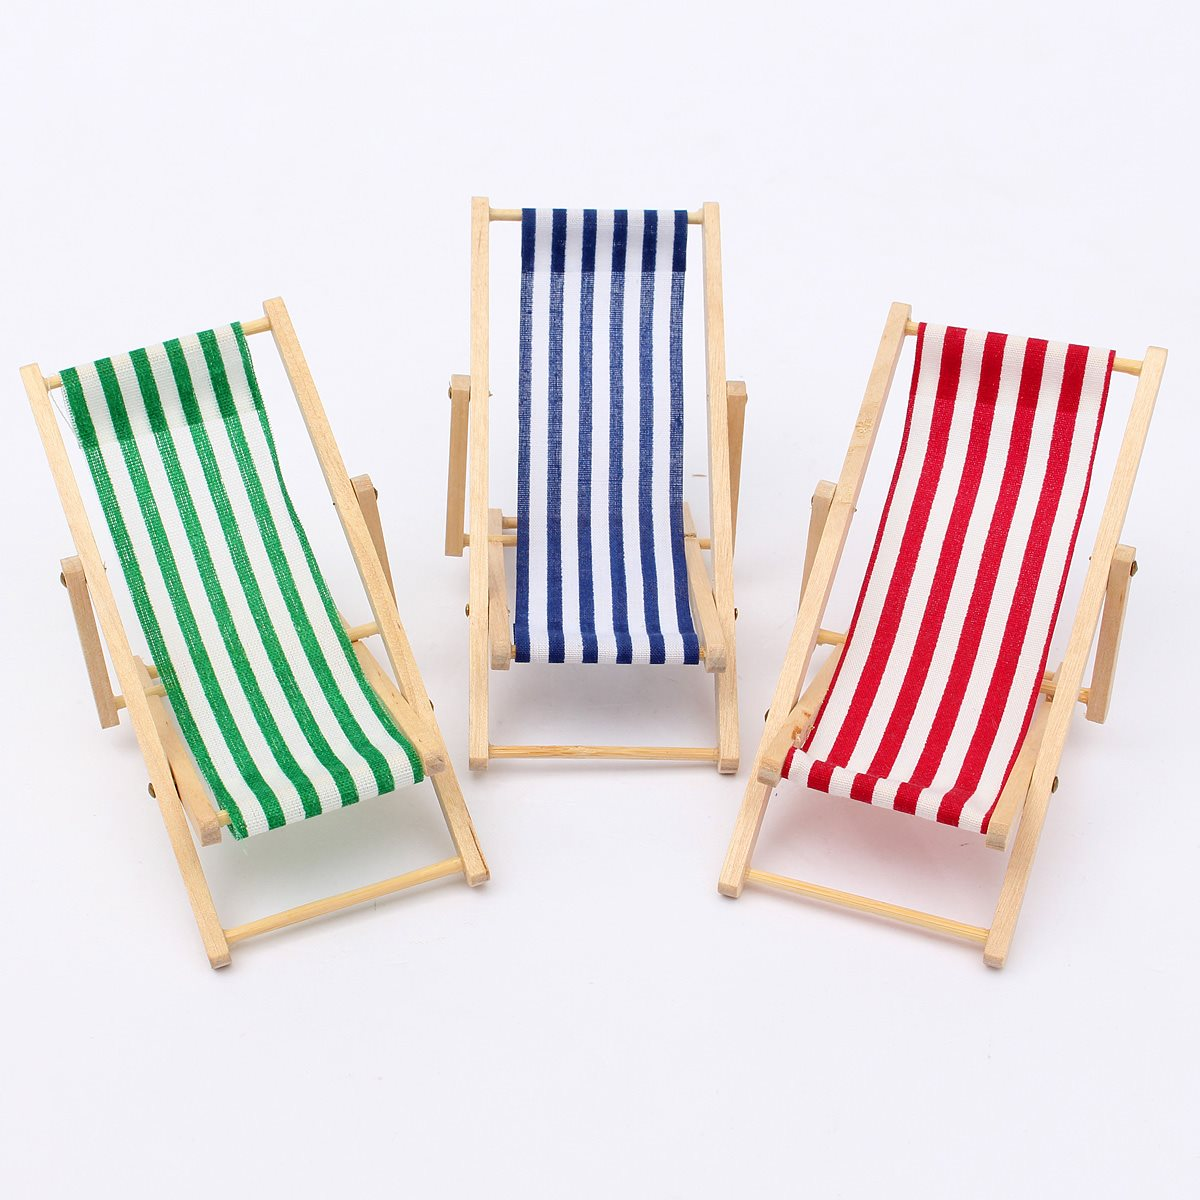 Folding Wood Beach Chair 1 12 Scale Foldable Wooden Deckchair Lounge Beach Chair For Lovely Miniature For Barbie Dolls House Color In Green Pink Blue In Dolls Accessories From